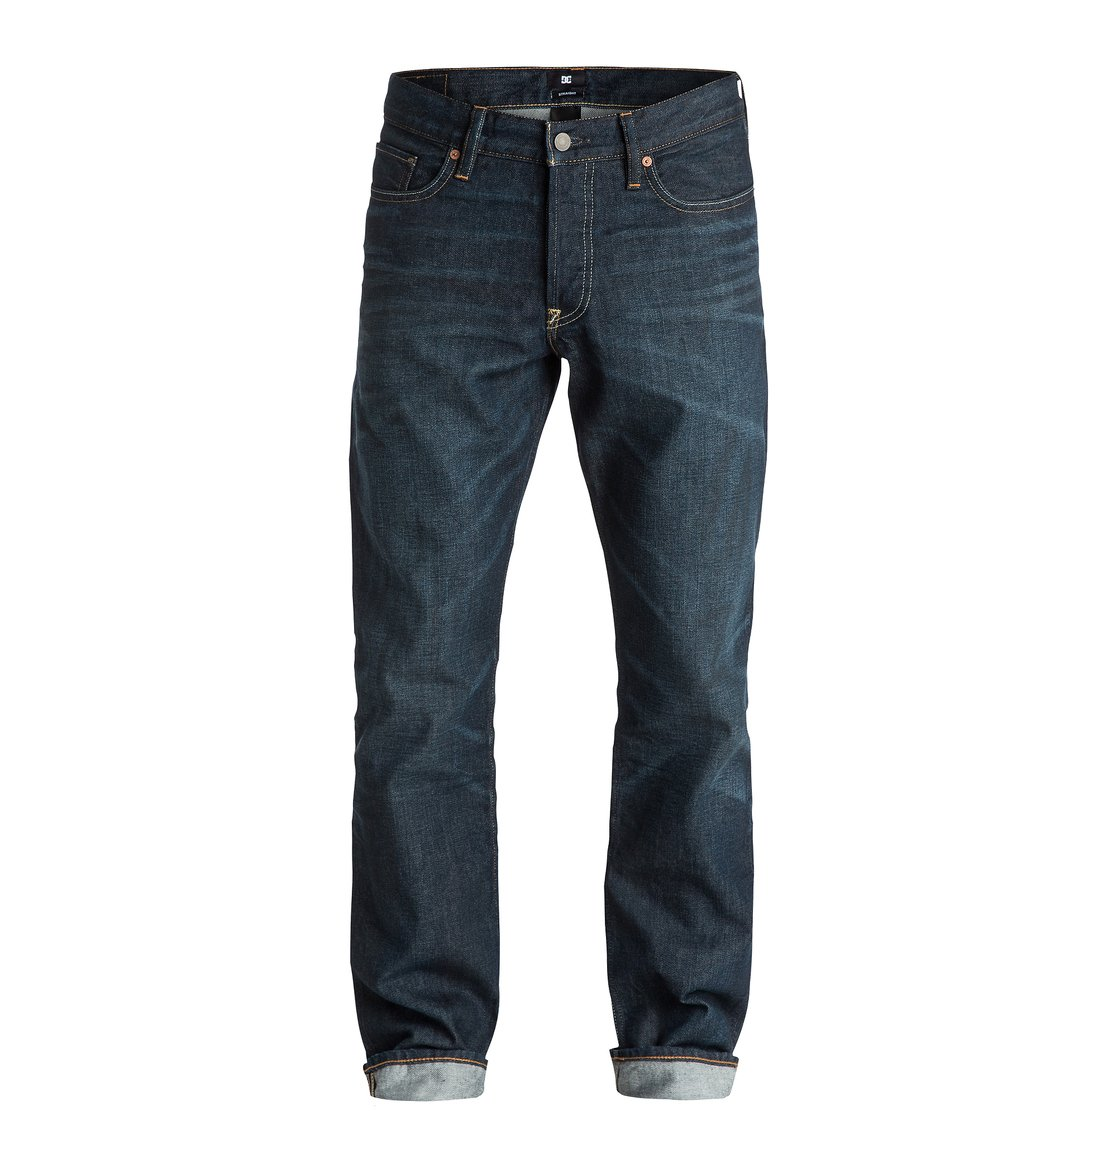 Note down the number, e.g. To measure the length of the jeans, hold the tape to the inner seam of the jeans. Start at one end, at the cut for example, and measure to the bottom corner of the pants. Note down the number, e.g. Your jeans size is 34/